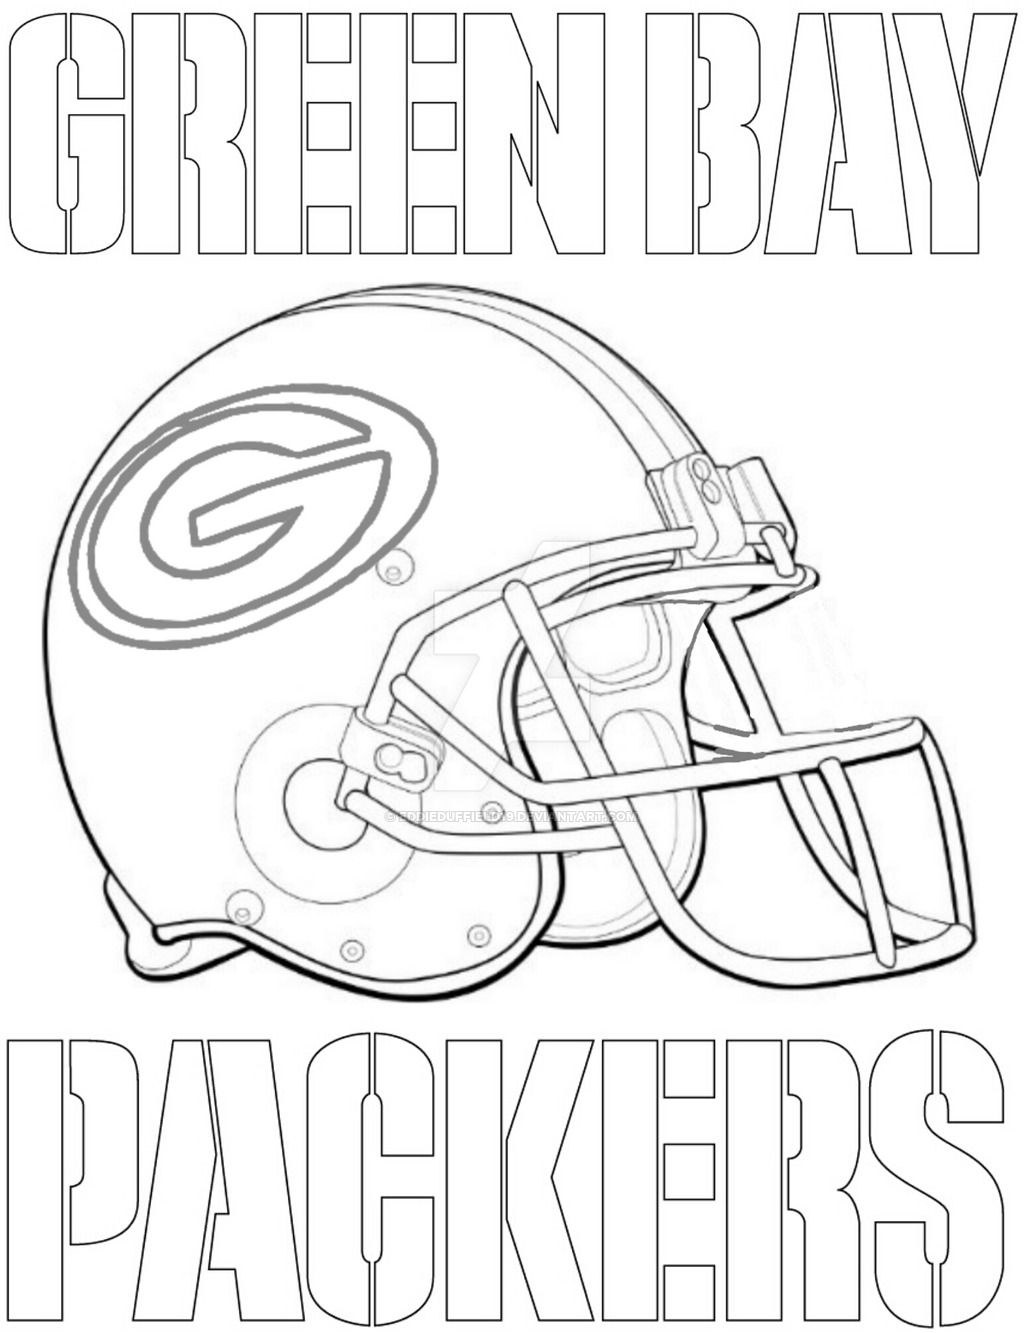 football images to colour super bowl 2017 coloring pages coloring home images colour football to